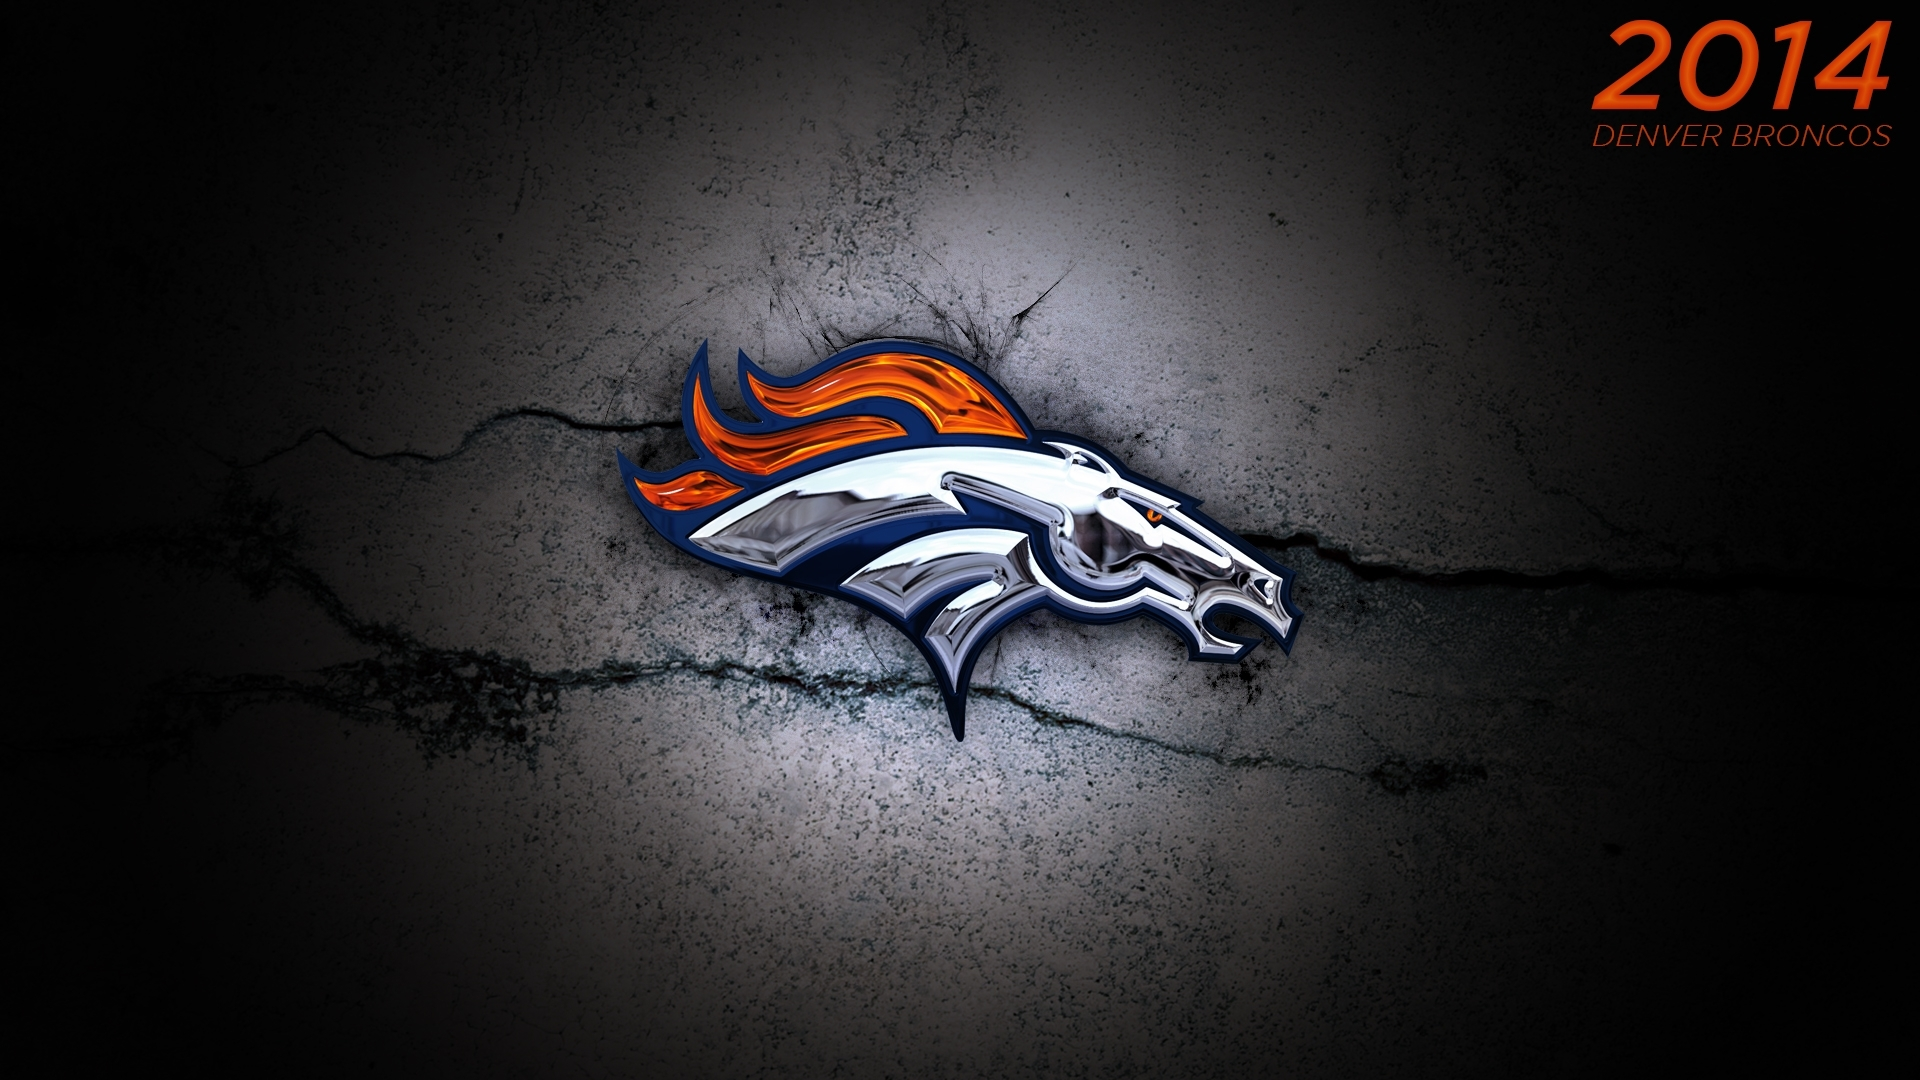 2014 denver broncos wallpaperdenversportswalls on deviantart